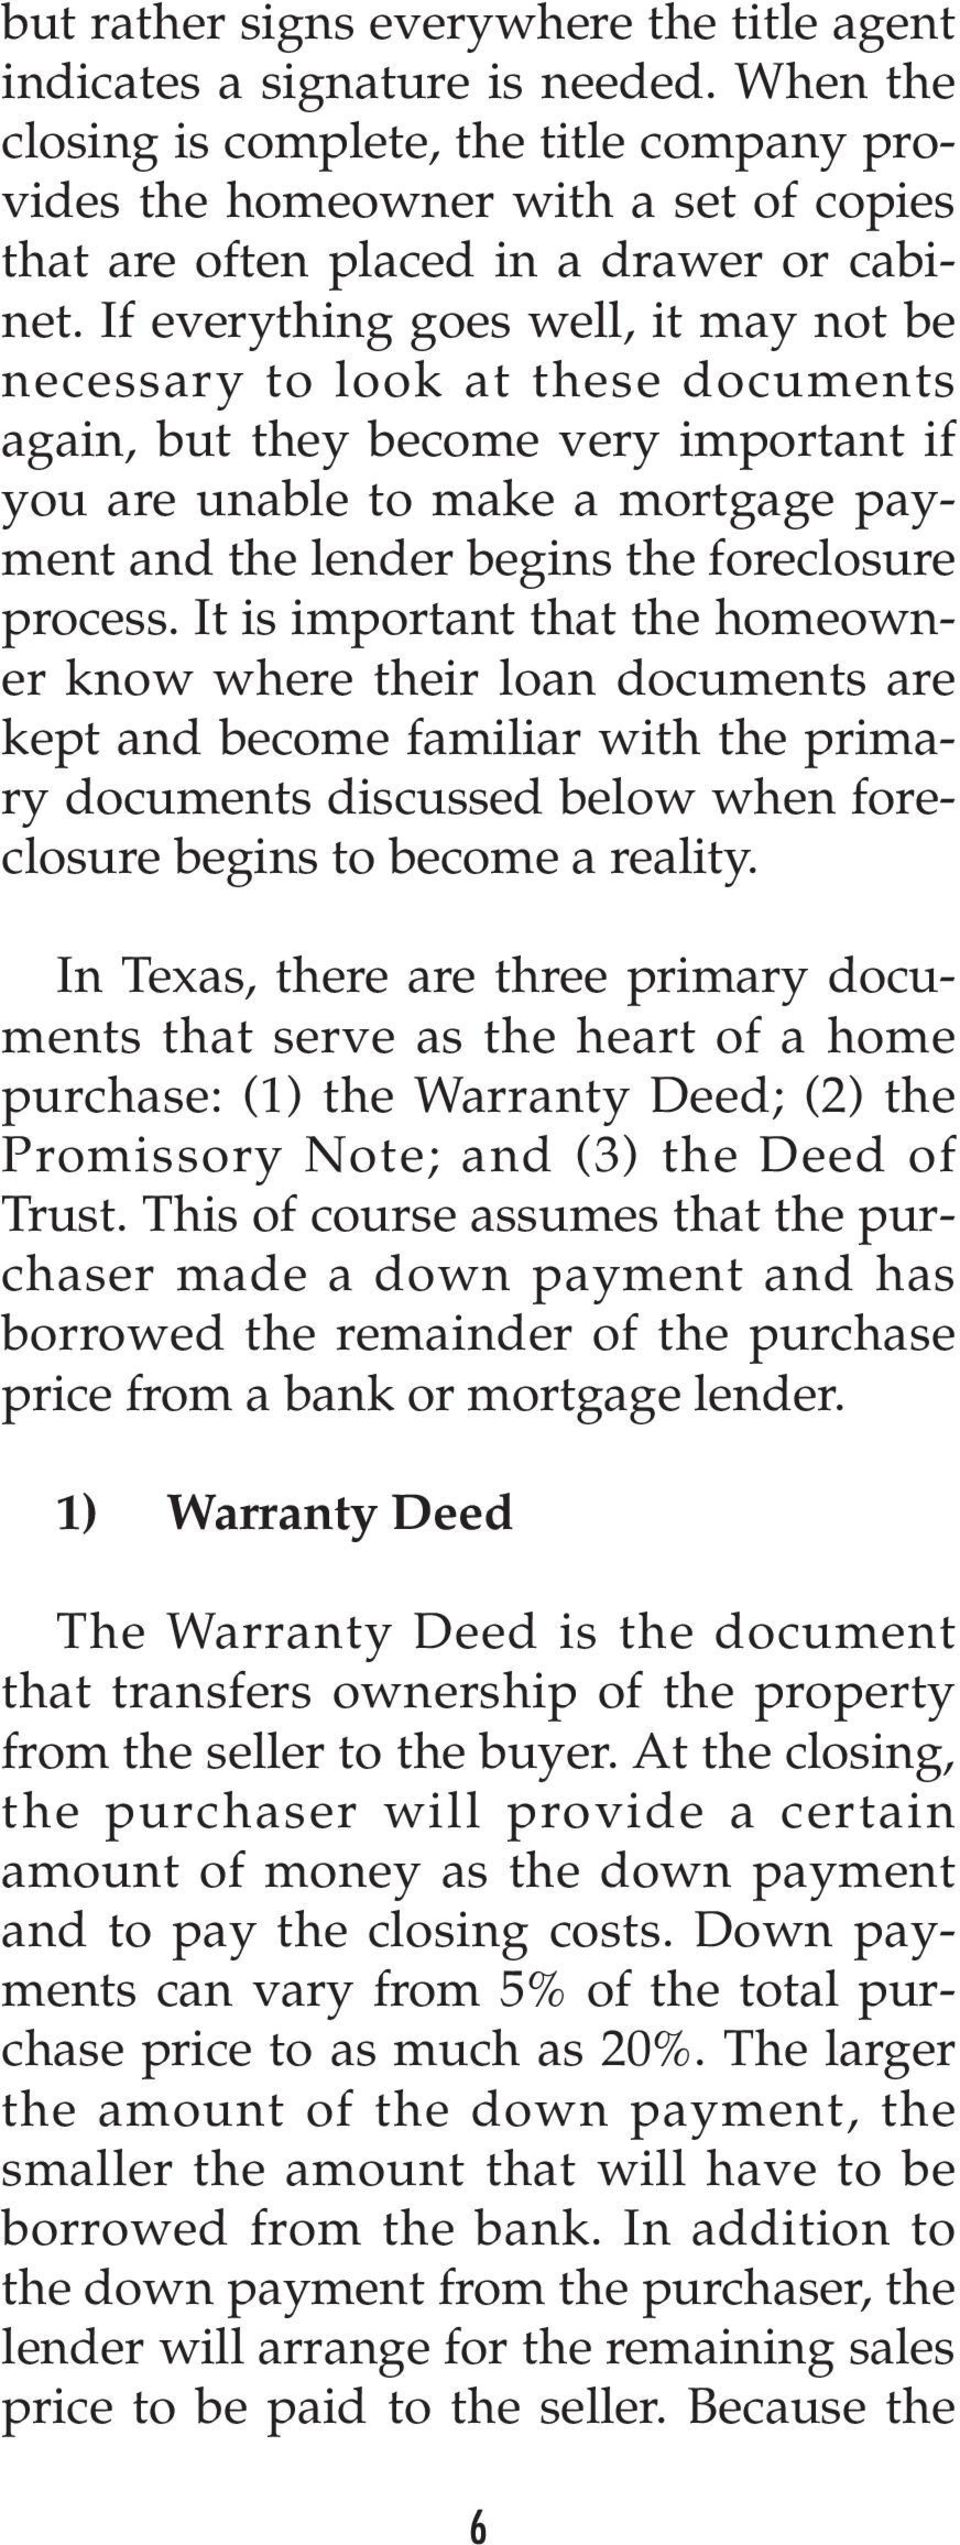 If everything goes well, it may not be necessary to look at these documents again, but they become very important if you are unable to make a mortgage payment and the lender begins the foreclosure